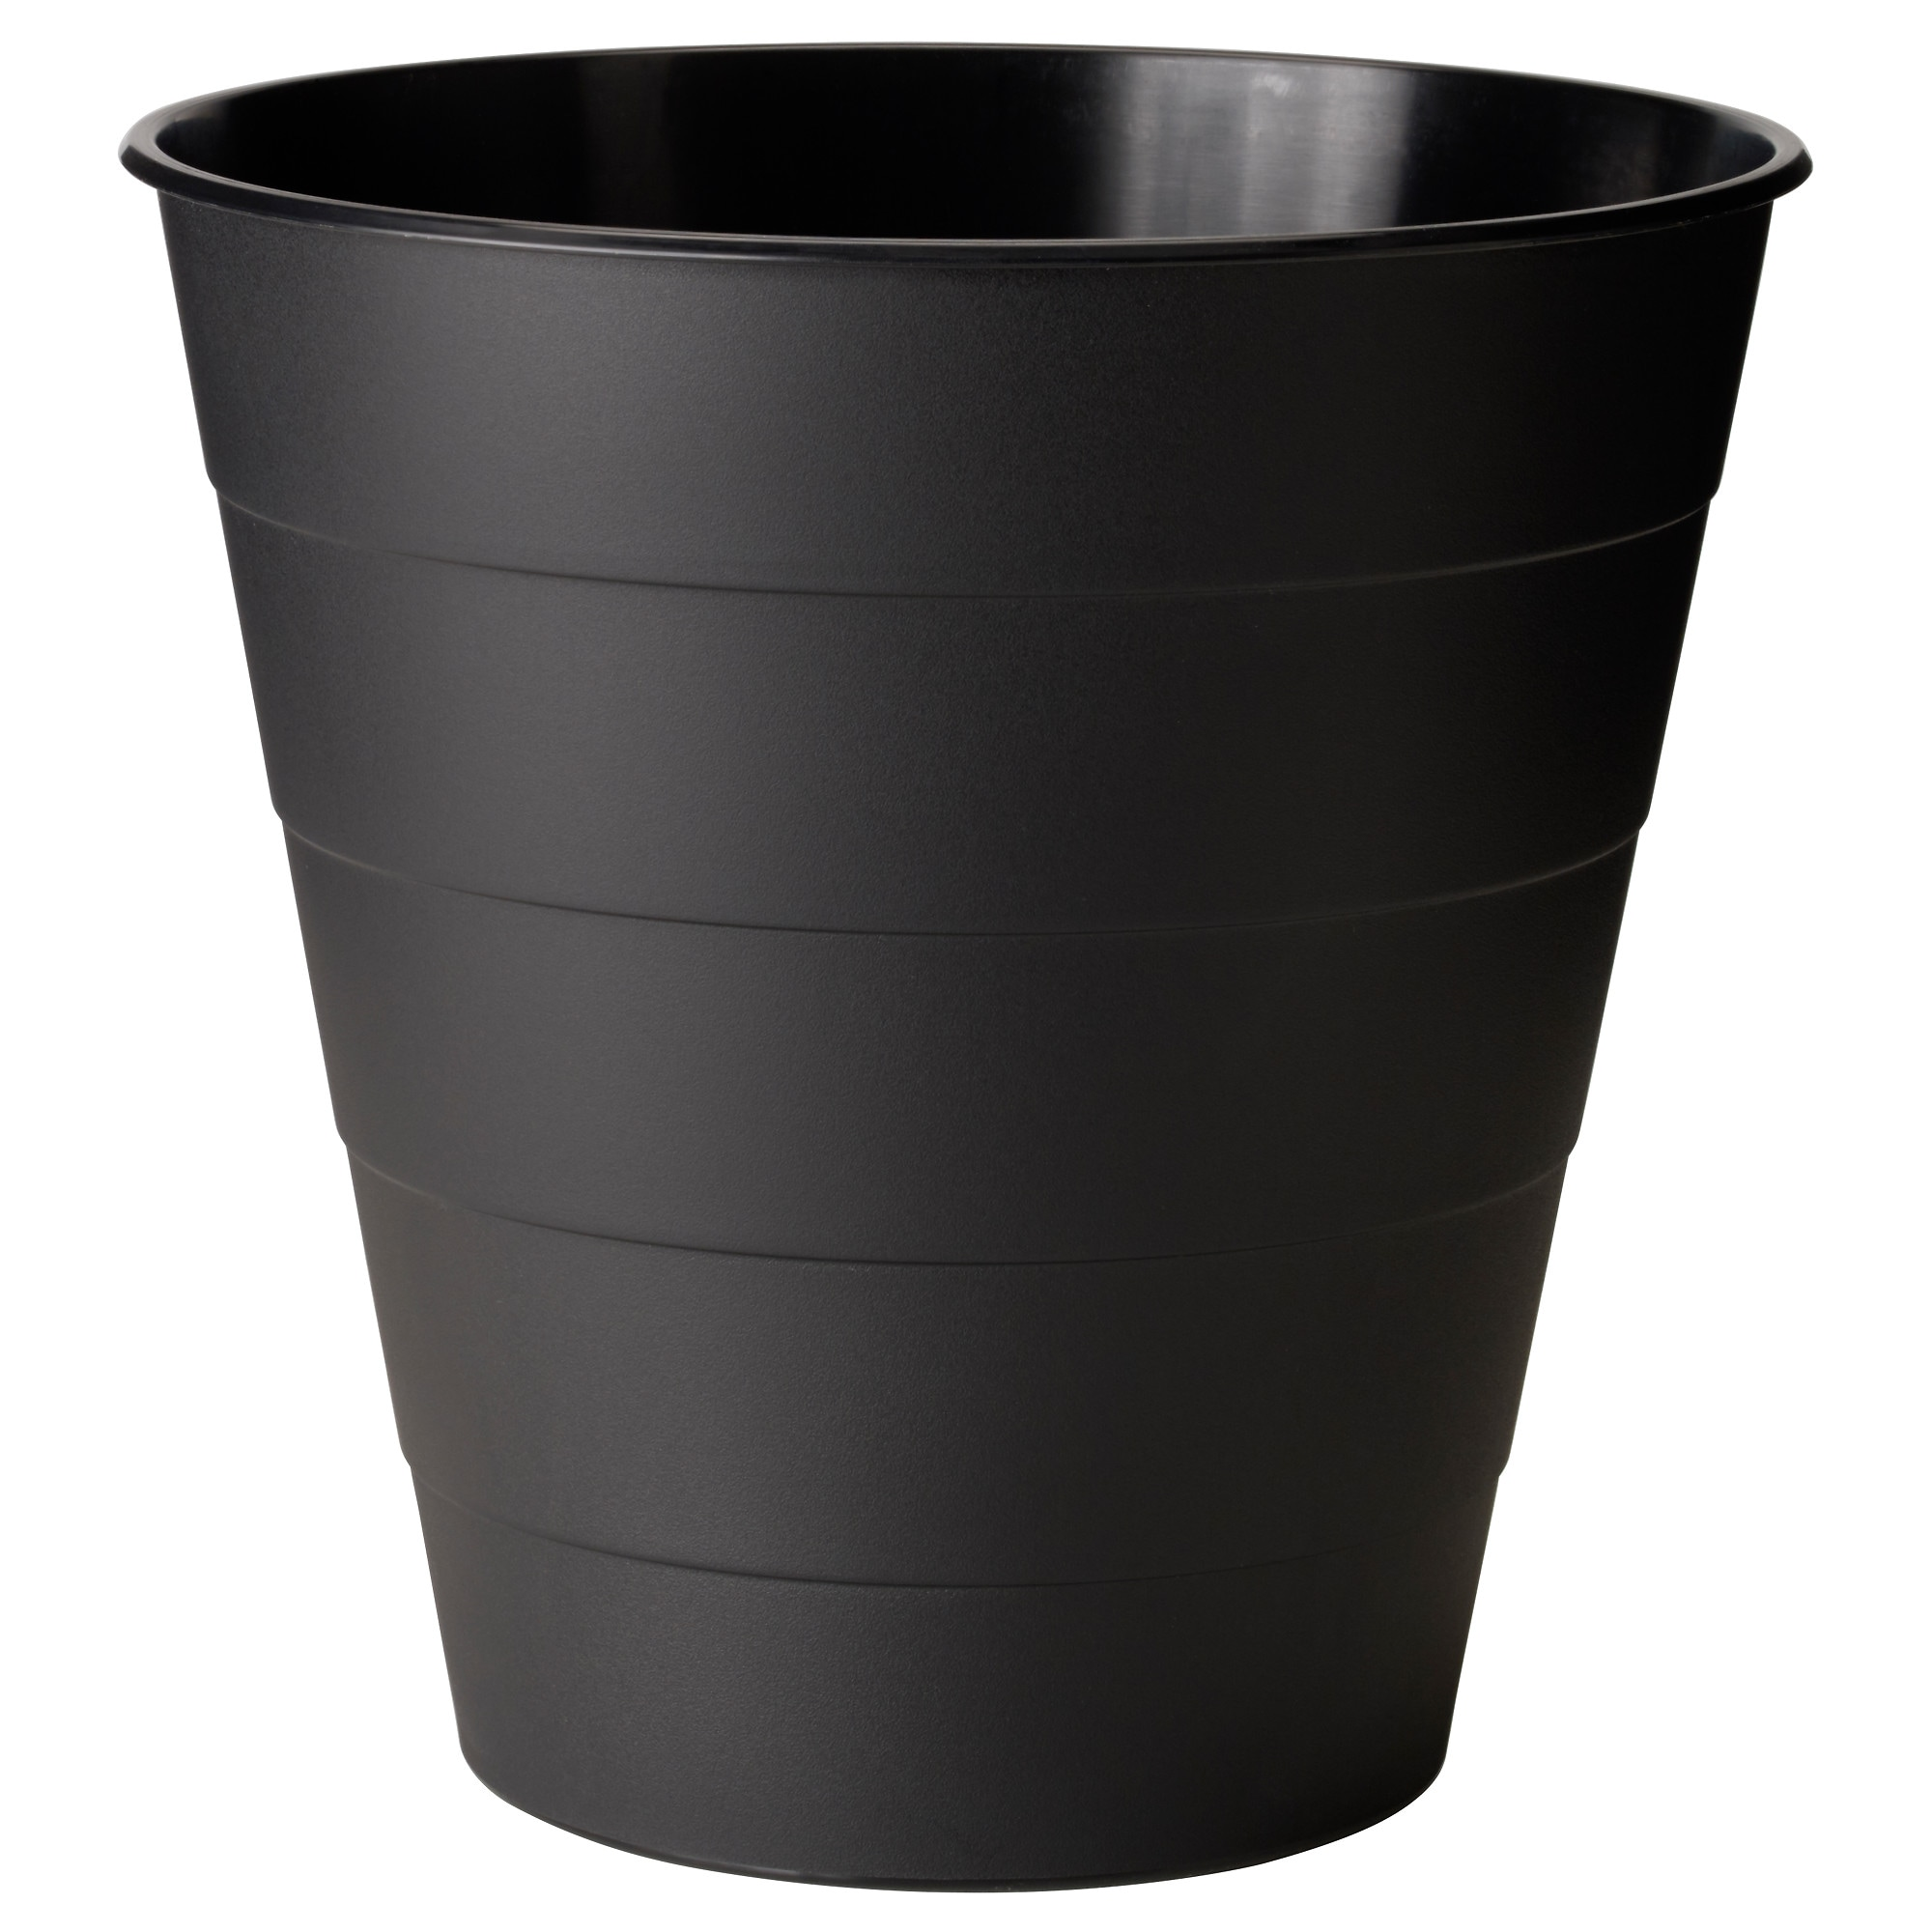 Fniss waste bin black ikea for Ikea raccolta differenziata